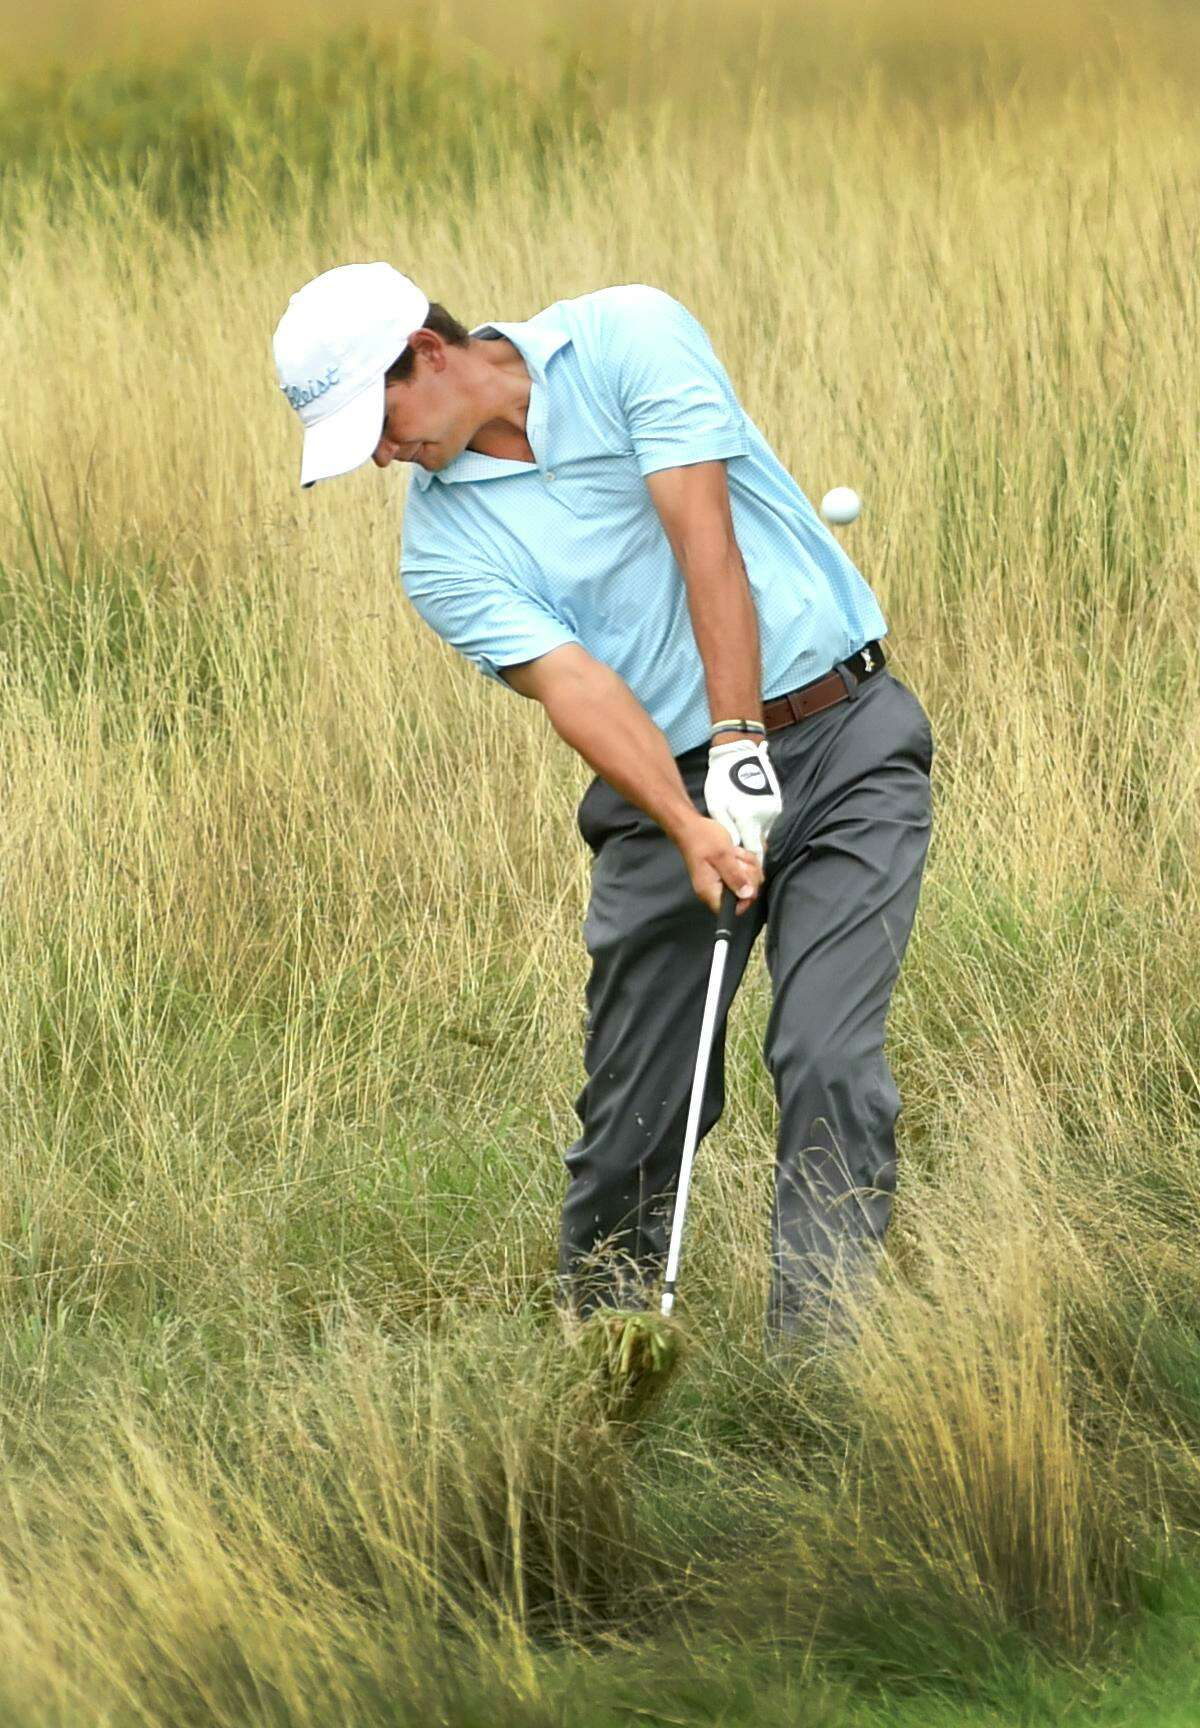 Hamden, Connecticut - Wednesday, August 1, 2018: Runner-up C.J. Swift of New Canaan punches out of the tall grass on the 18th fairway during the final round of the Connecticut Open Golf Tournament Wednesday at the New Haven Country Club in Hamden. John VanderLaan of Southbury won the tournament.